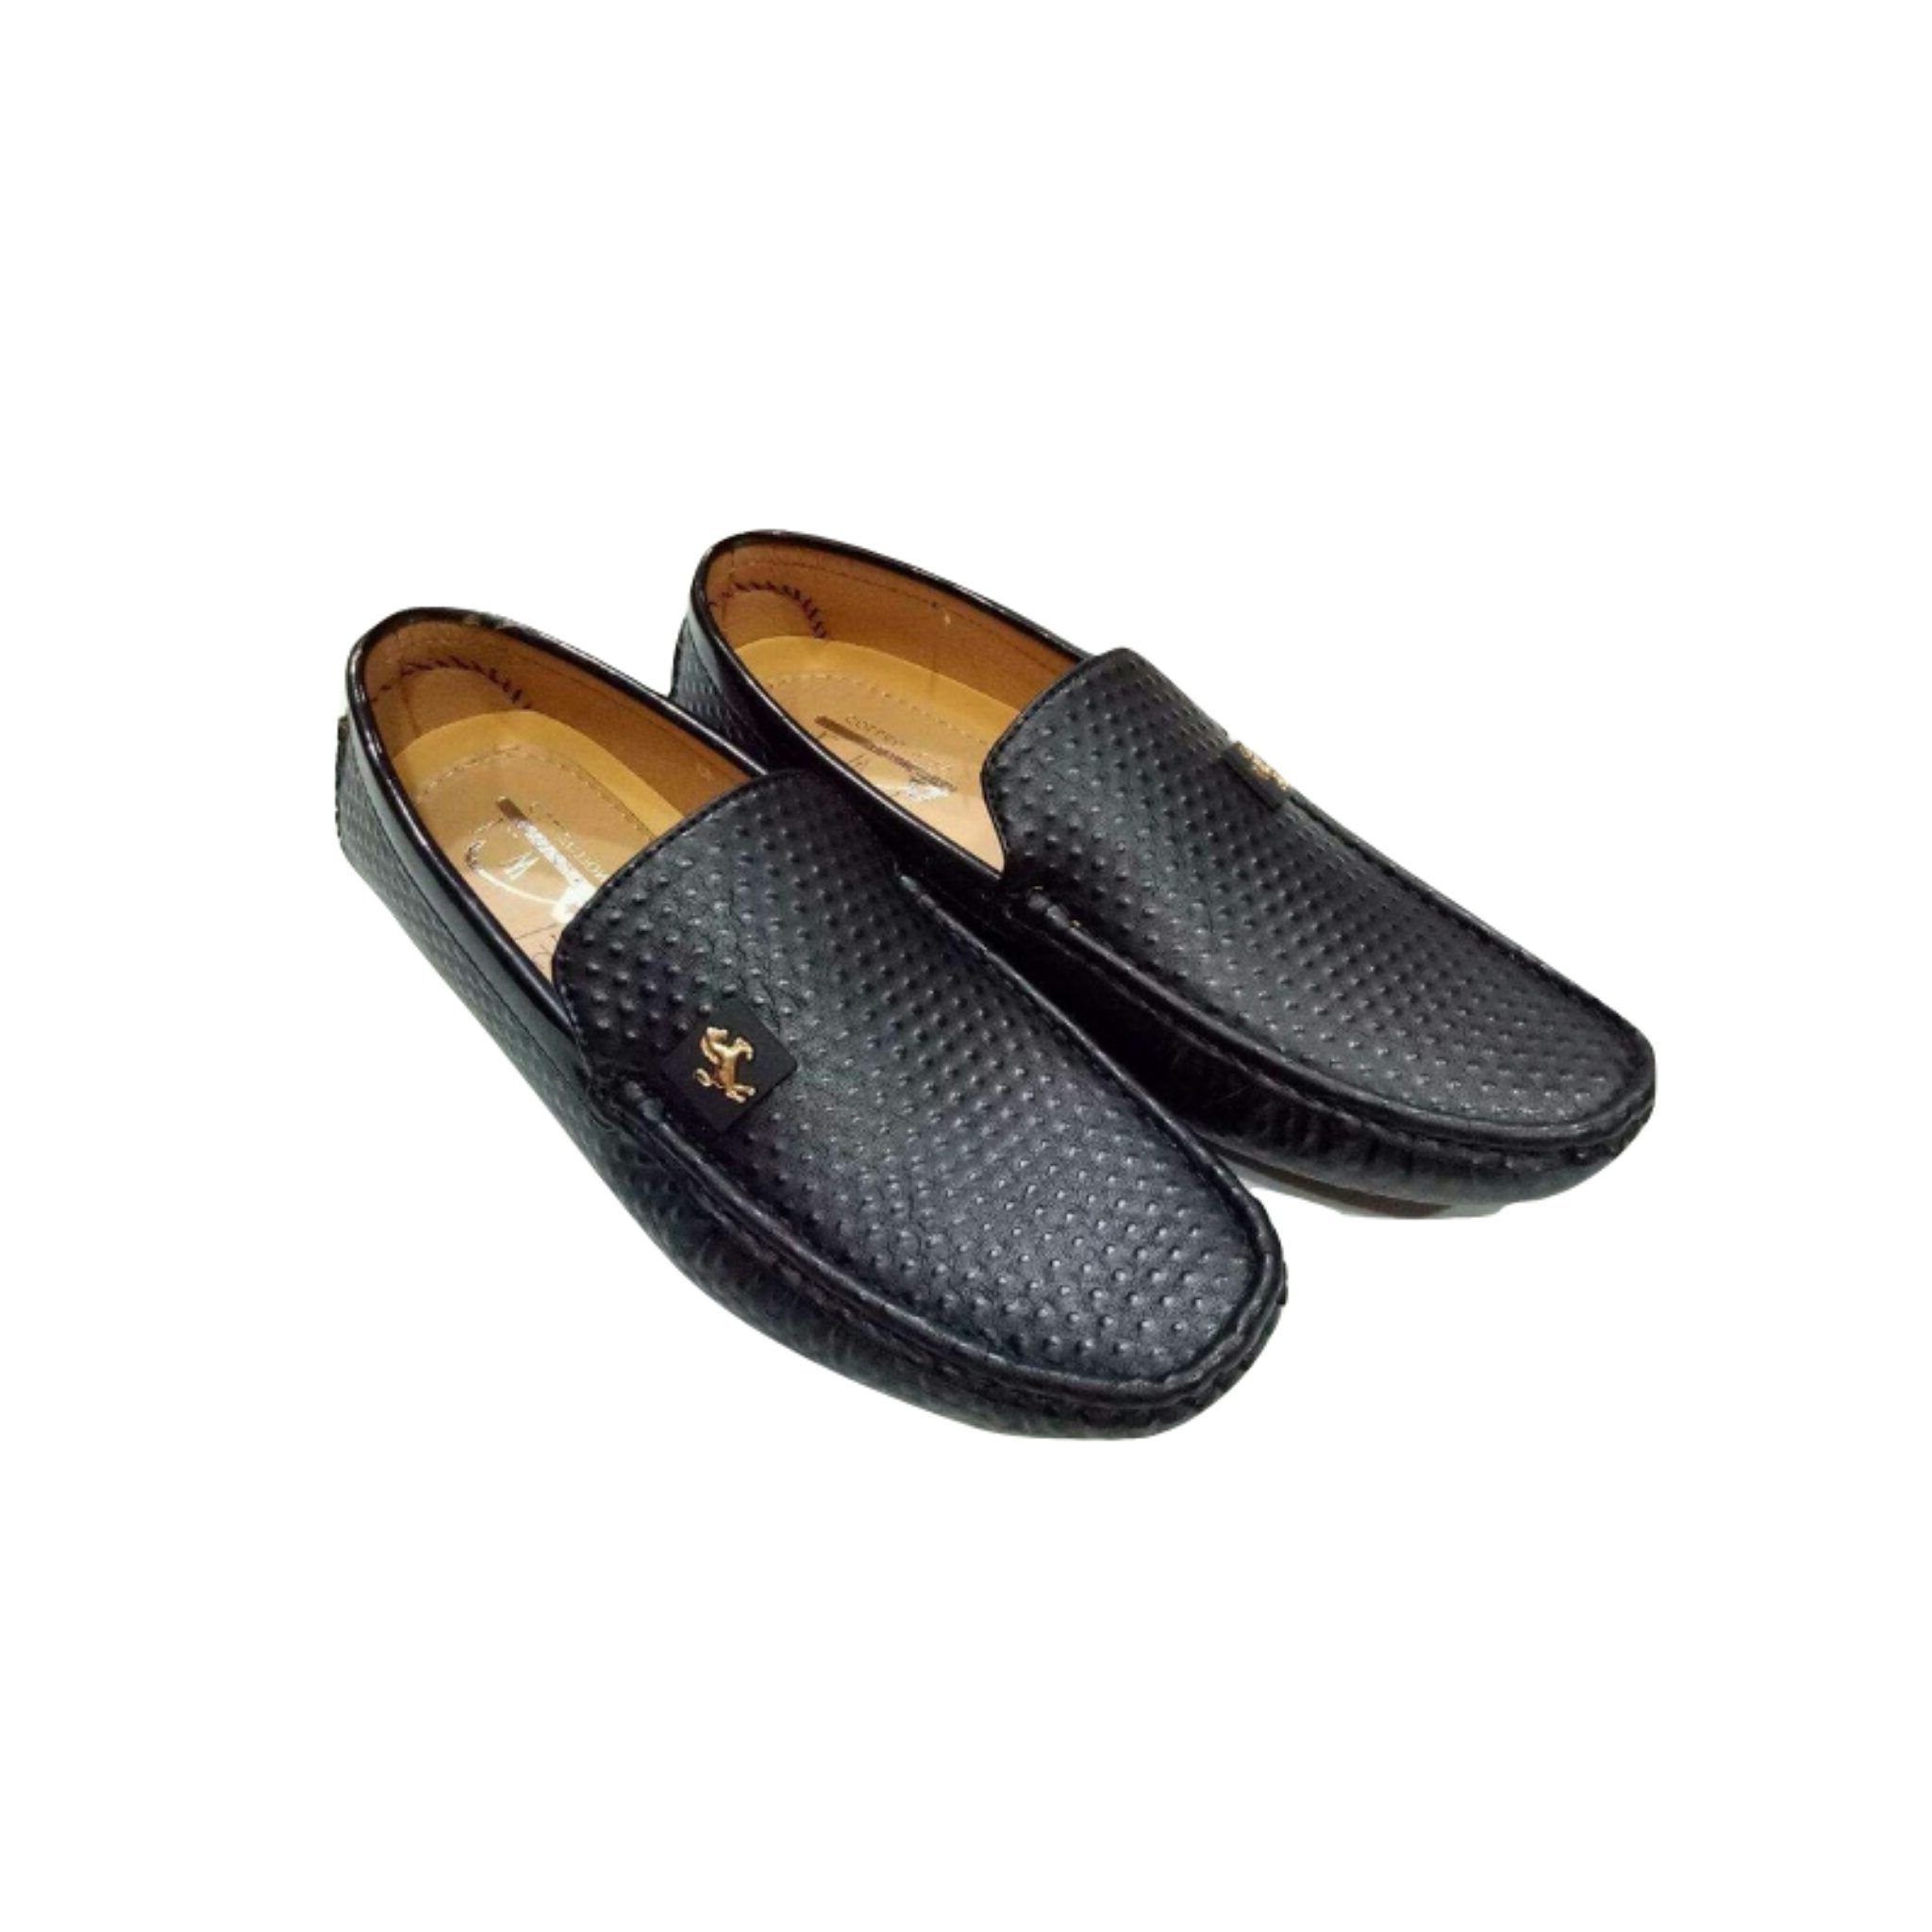 41dbee81635 Mens Black Loafers Prices In Pakistan